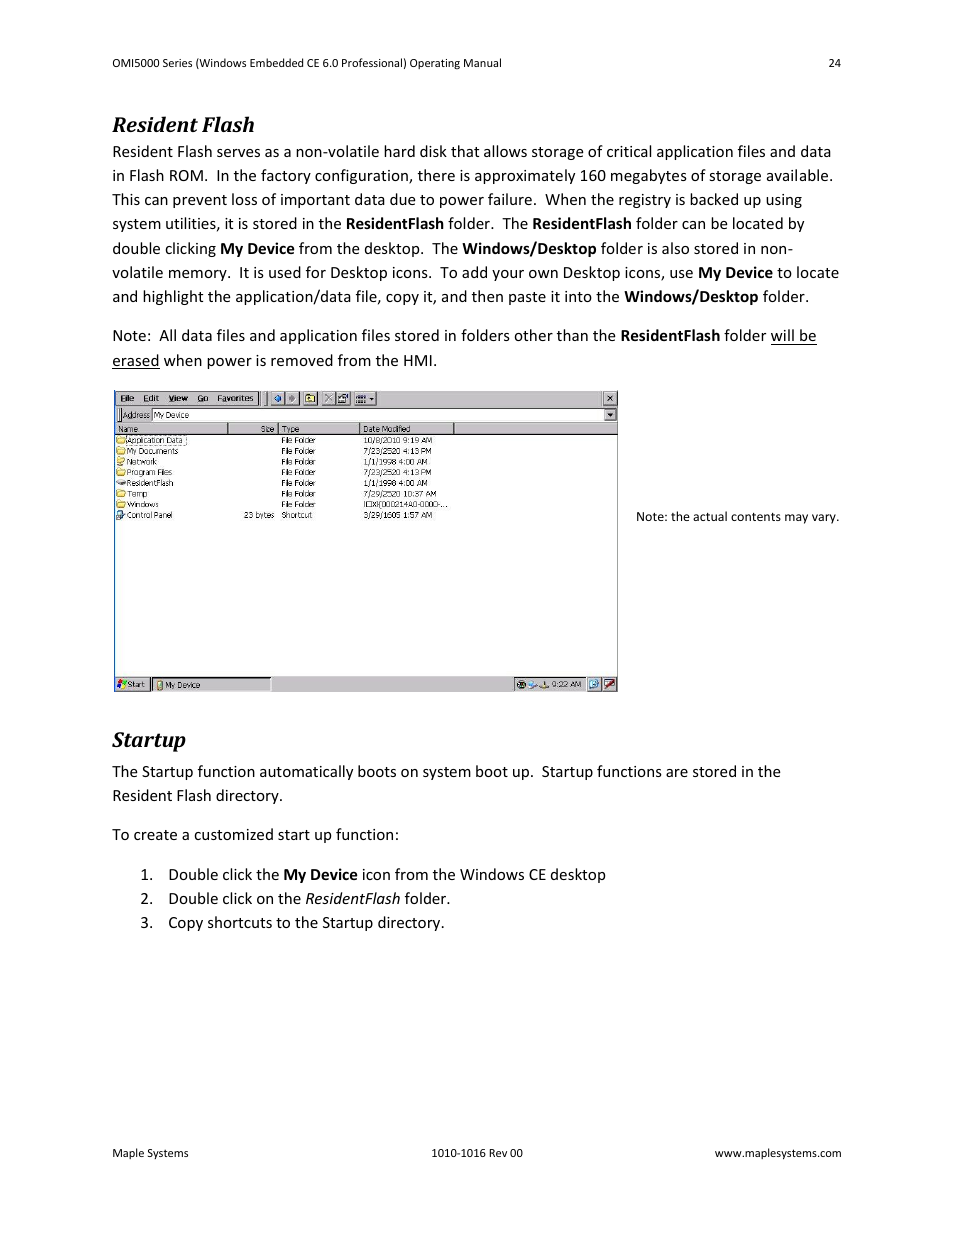 Resident flash, Startup | Maple Systems Windows CE Embedded 6.0  Professional Edition User Manual | Page 28 / 40